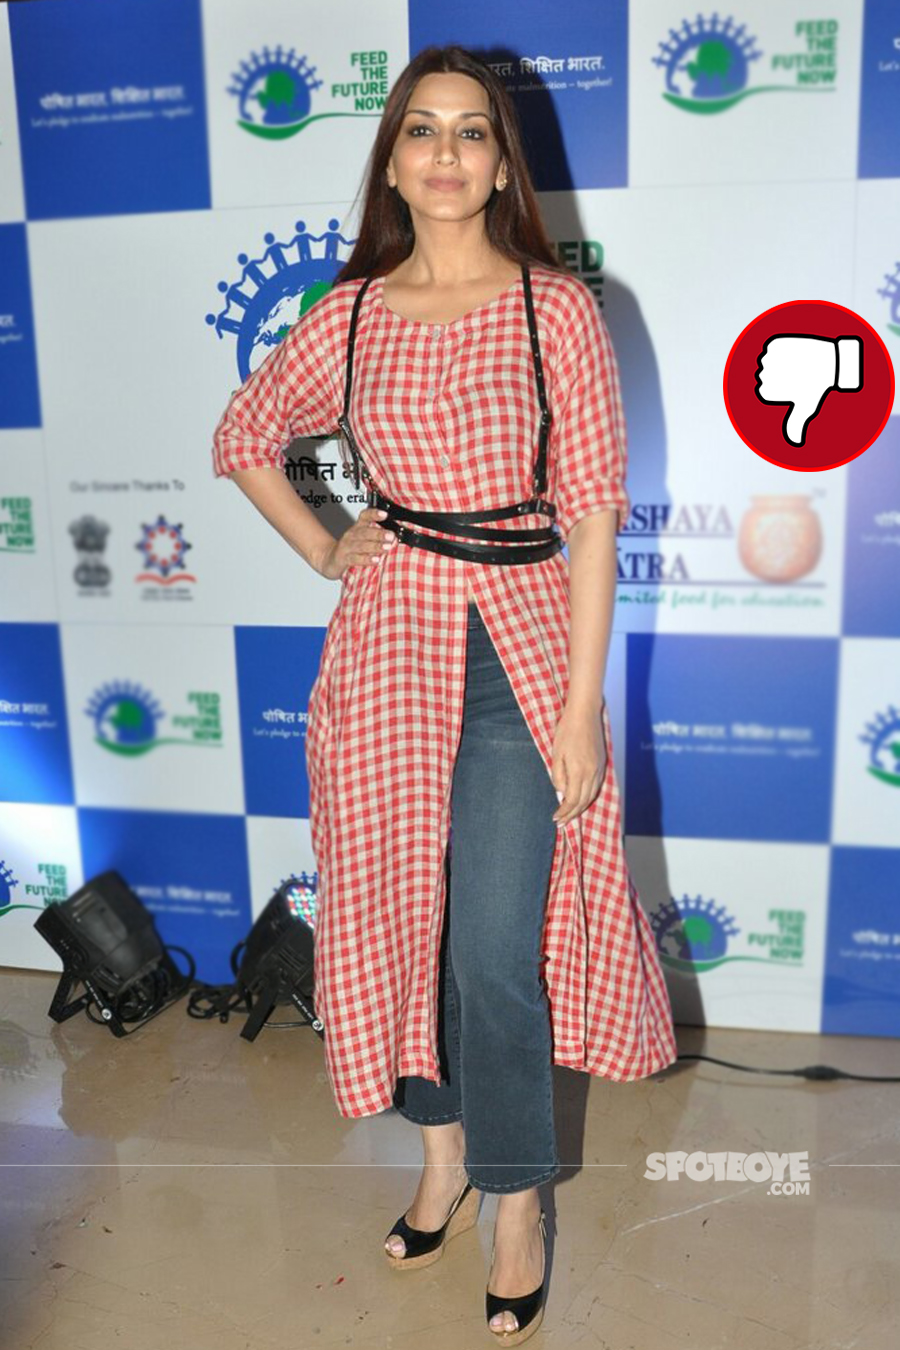 sonali bendre at an event